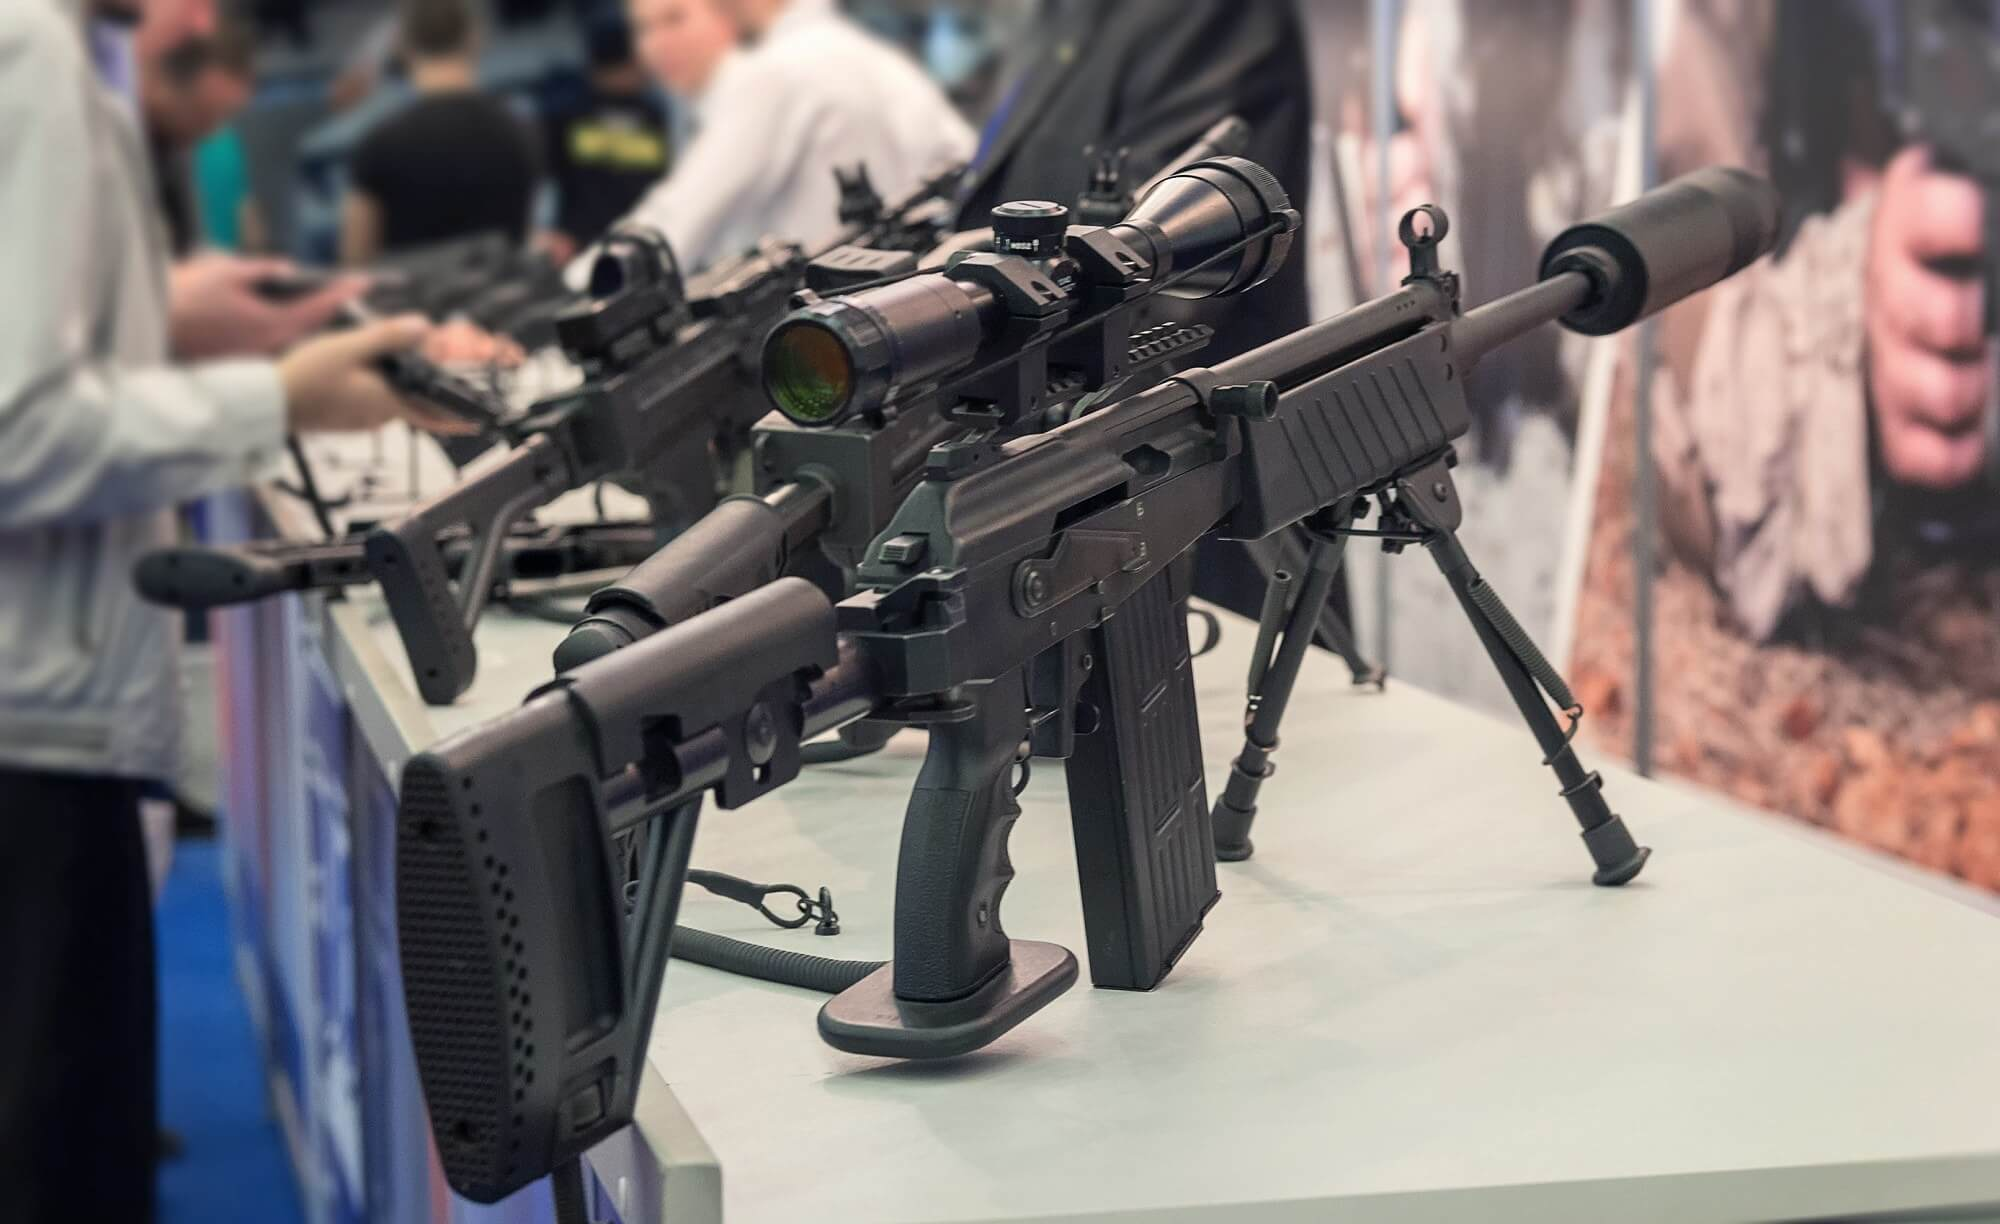 Salesforce says companies that sell semi-automatic weapons can't use its software